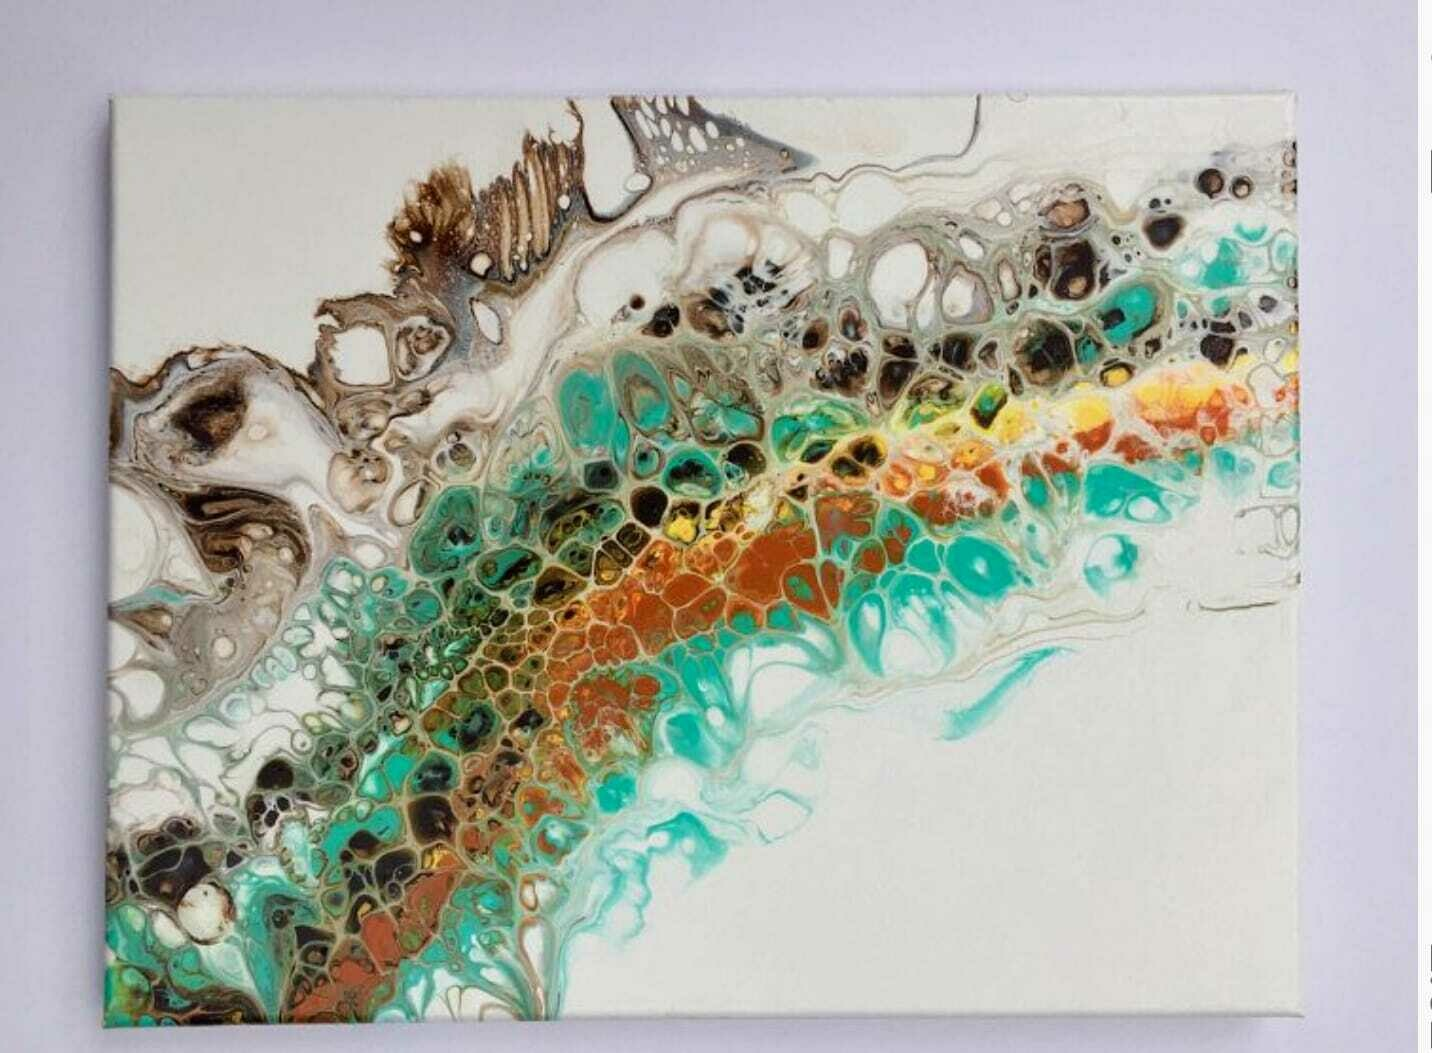 Acrylic Pouring Swipe Method LIVE ONLINE Workshop